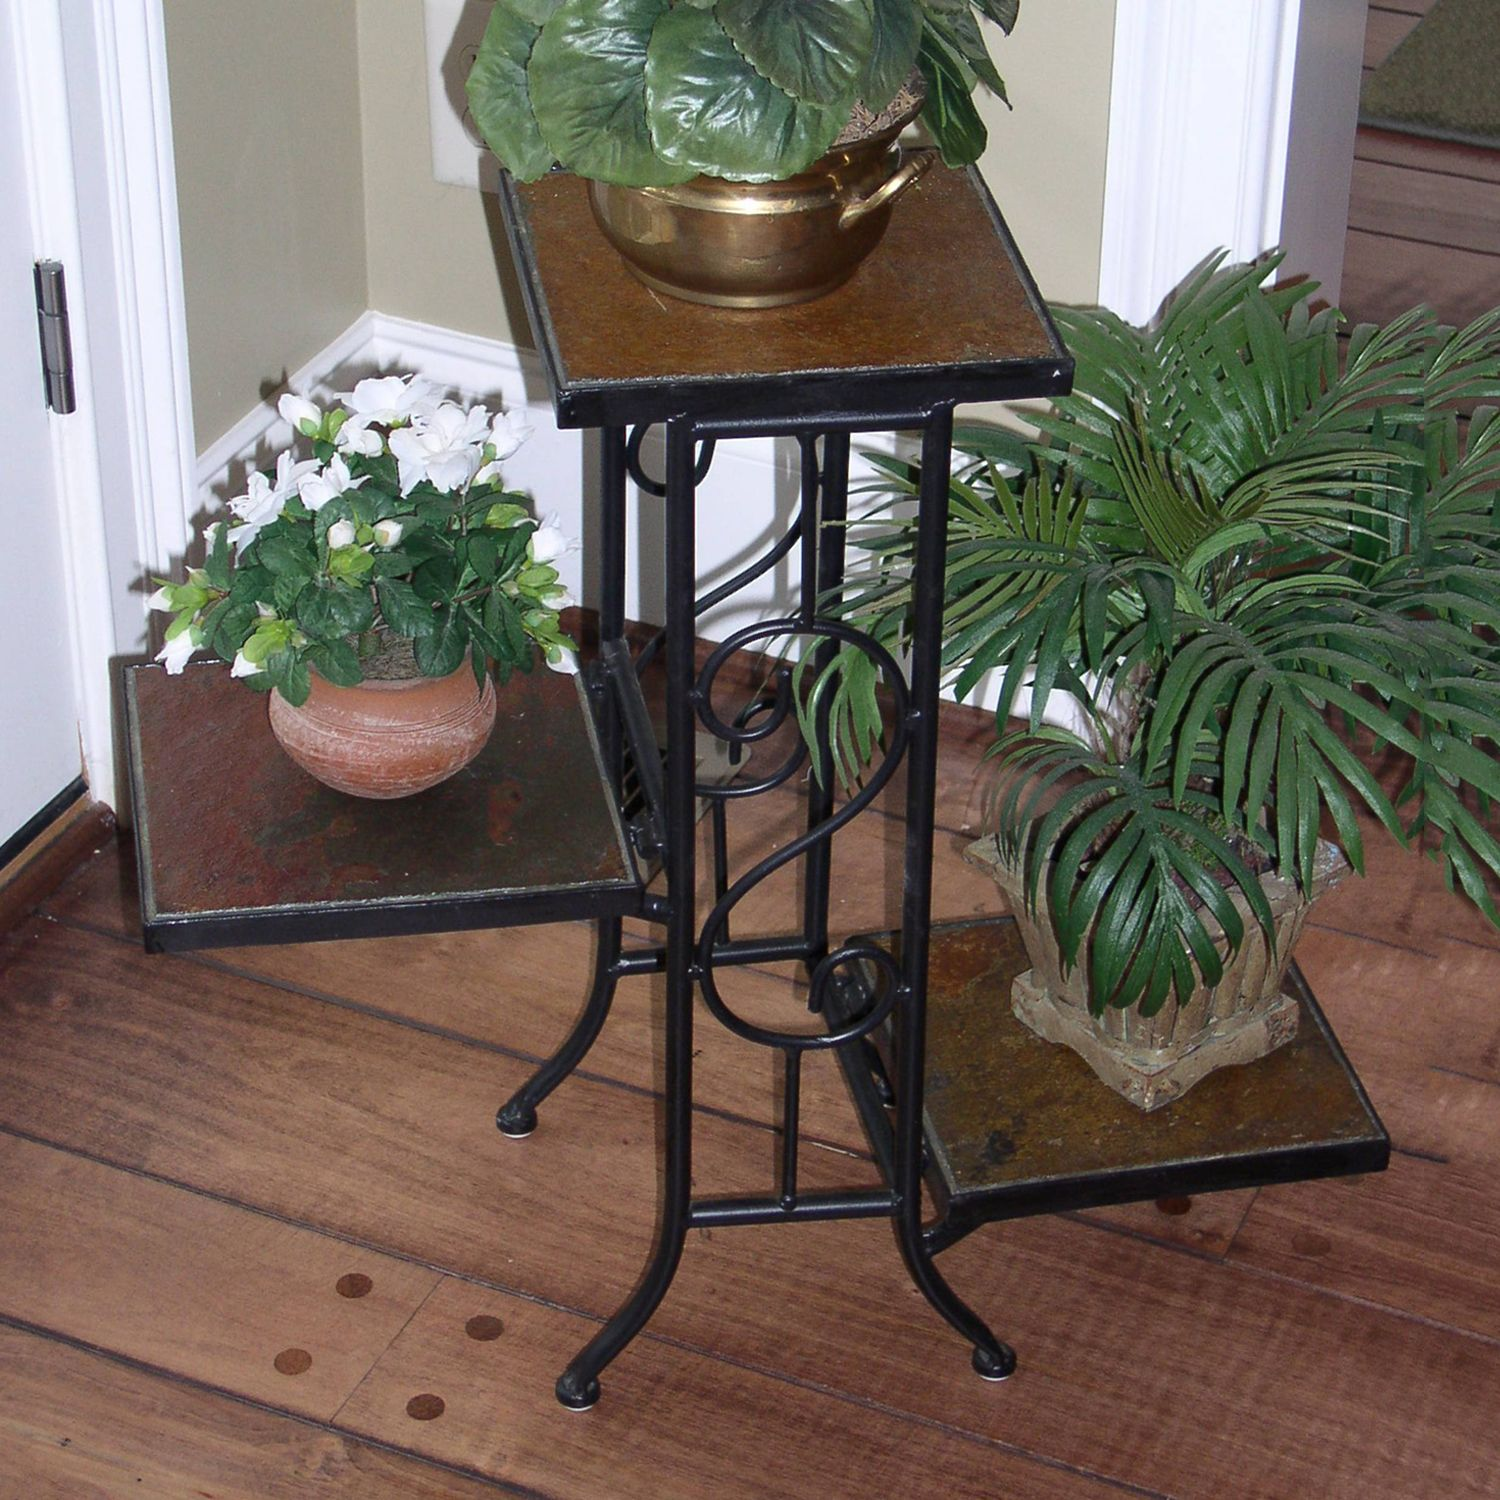 Slate 3 Tier Plant Stand   Outdoor